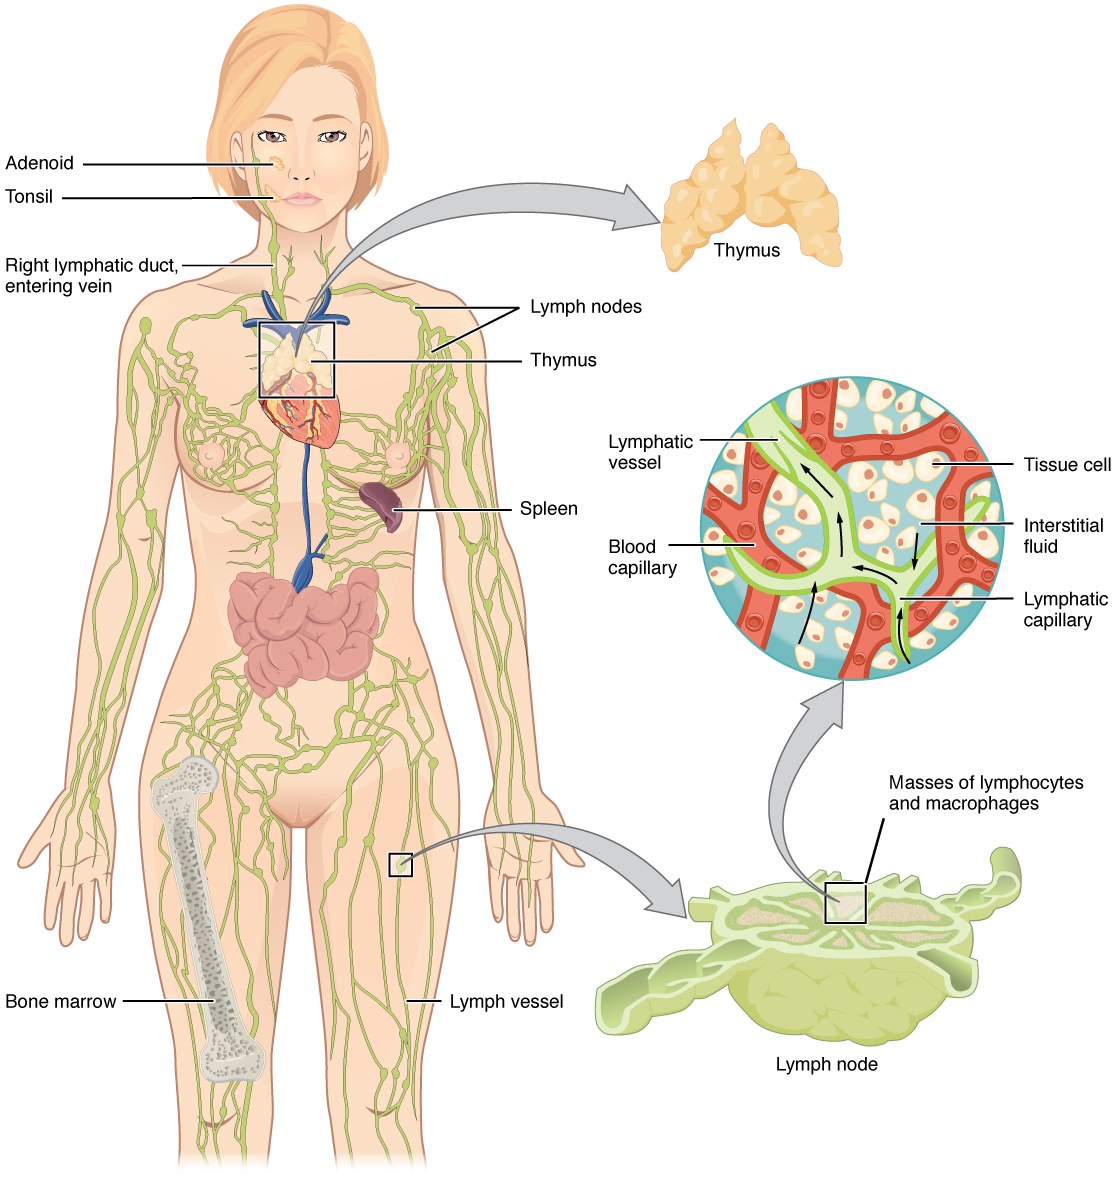 21 1 Anatomy of the Lymphatic and Immune Systems – Anatomy